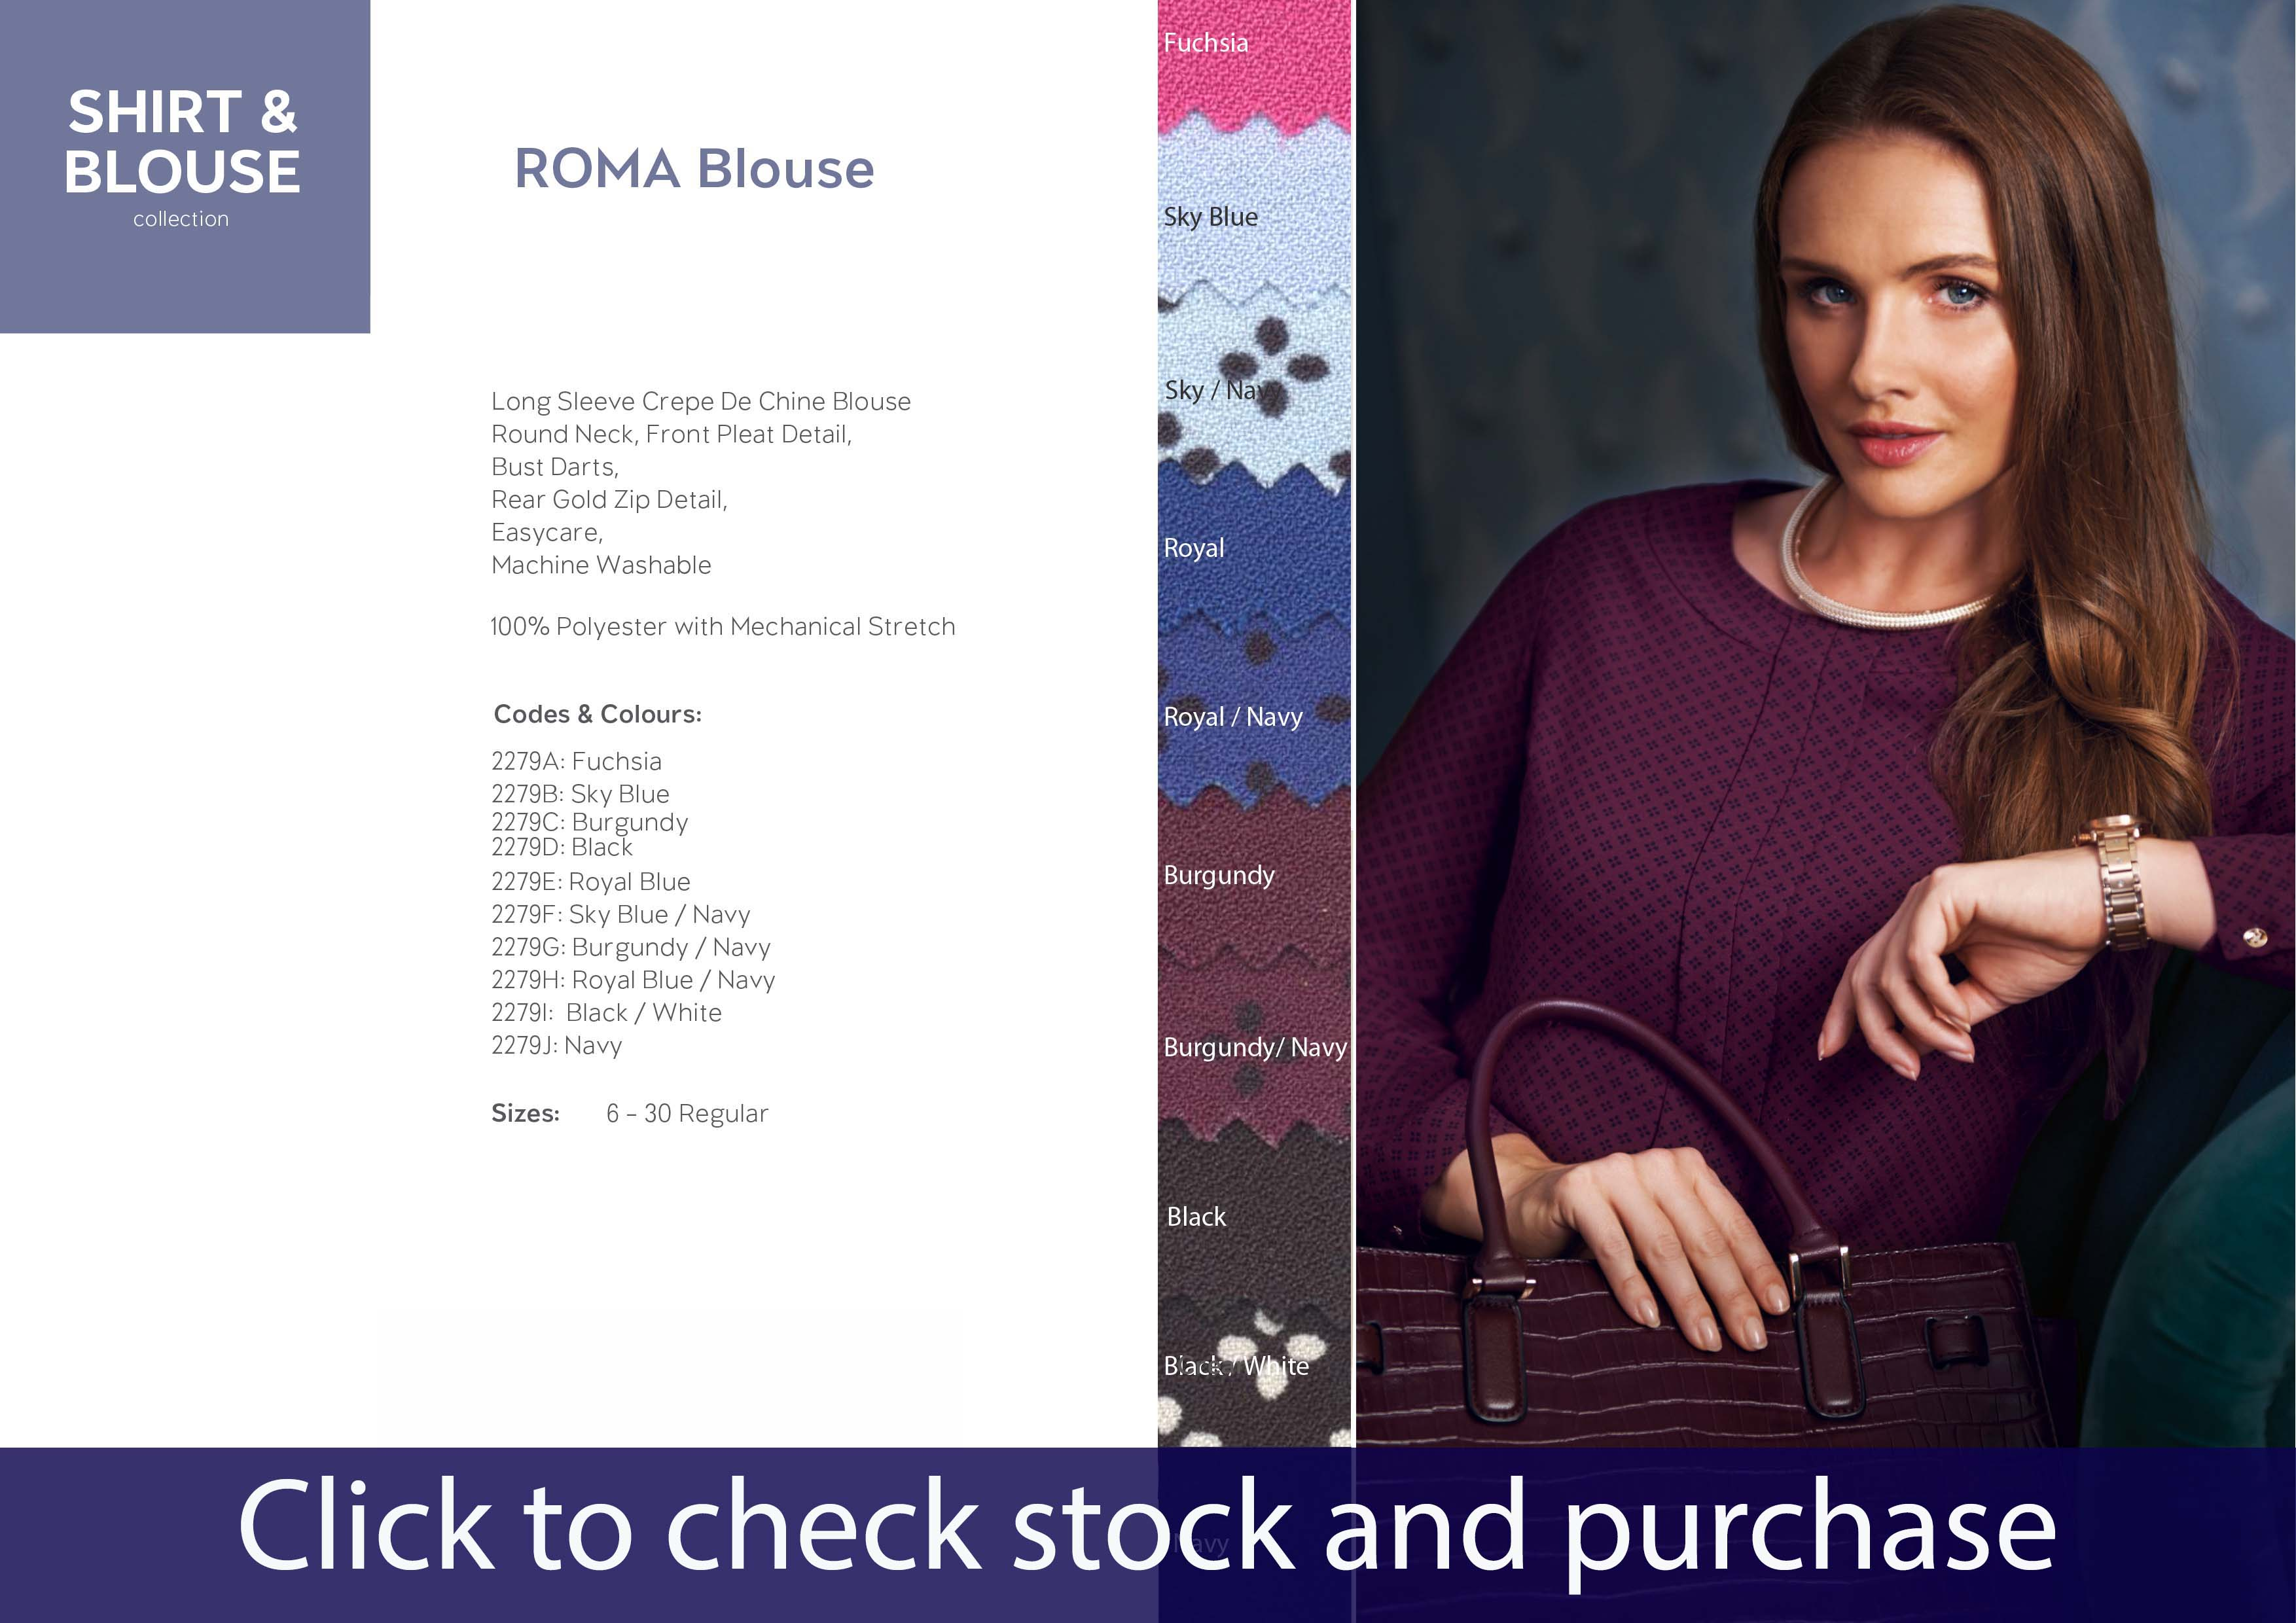 BROOK TAVERNER ROMA BLOUSE 2279